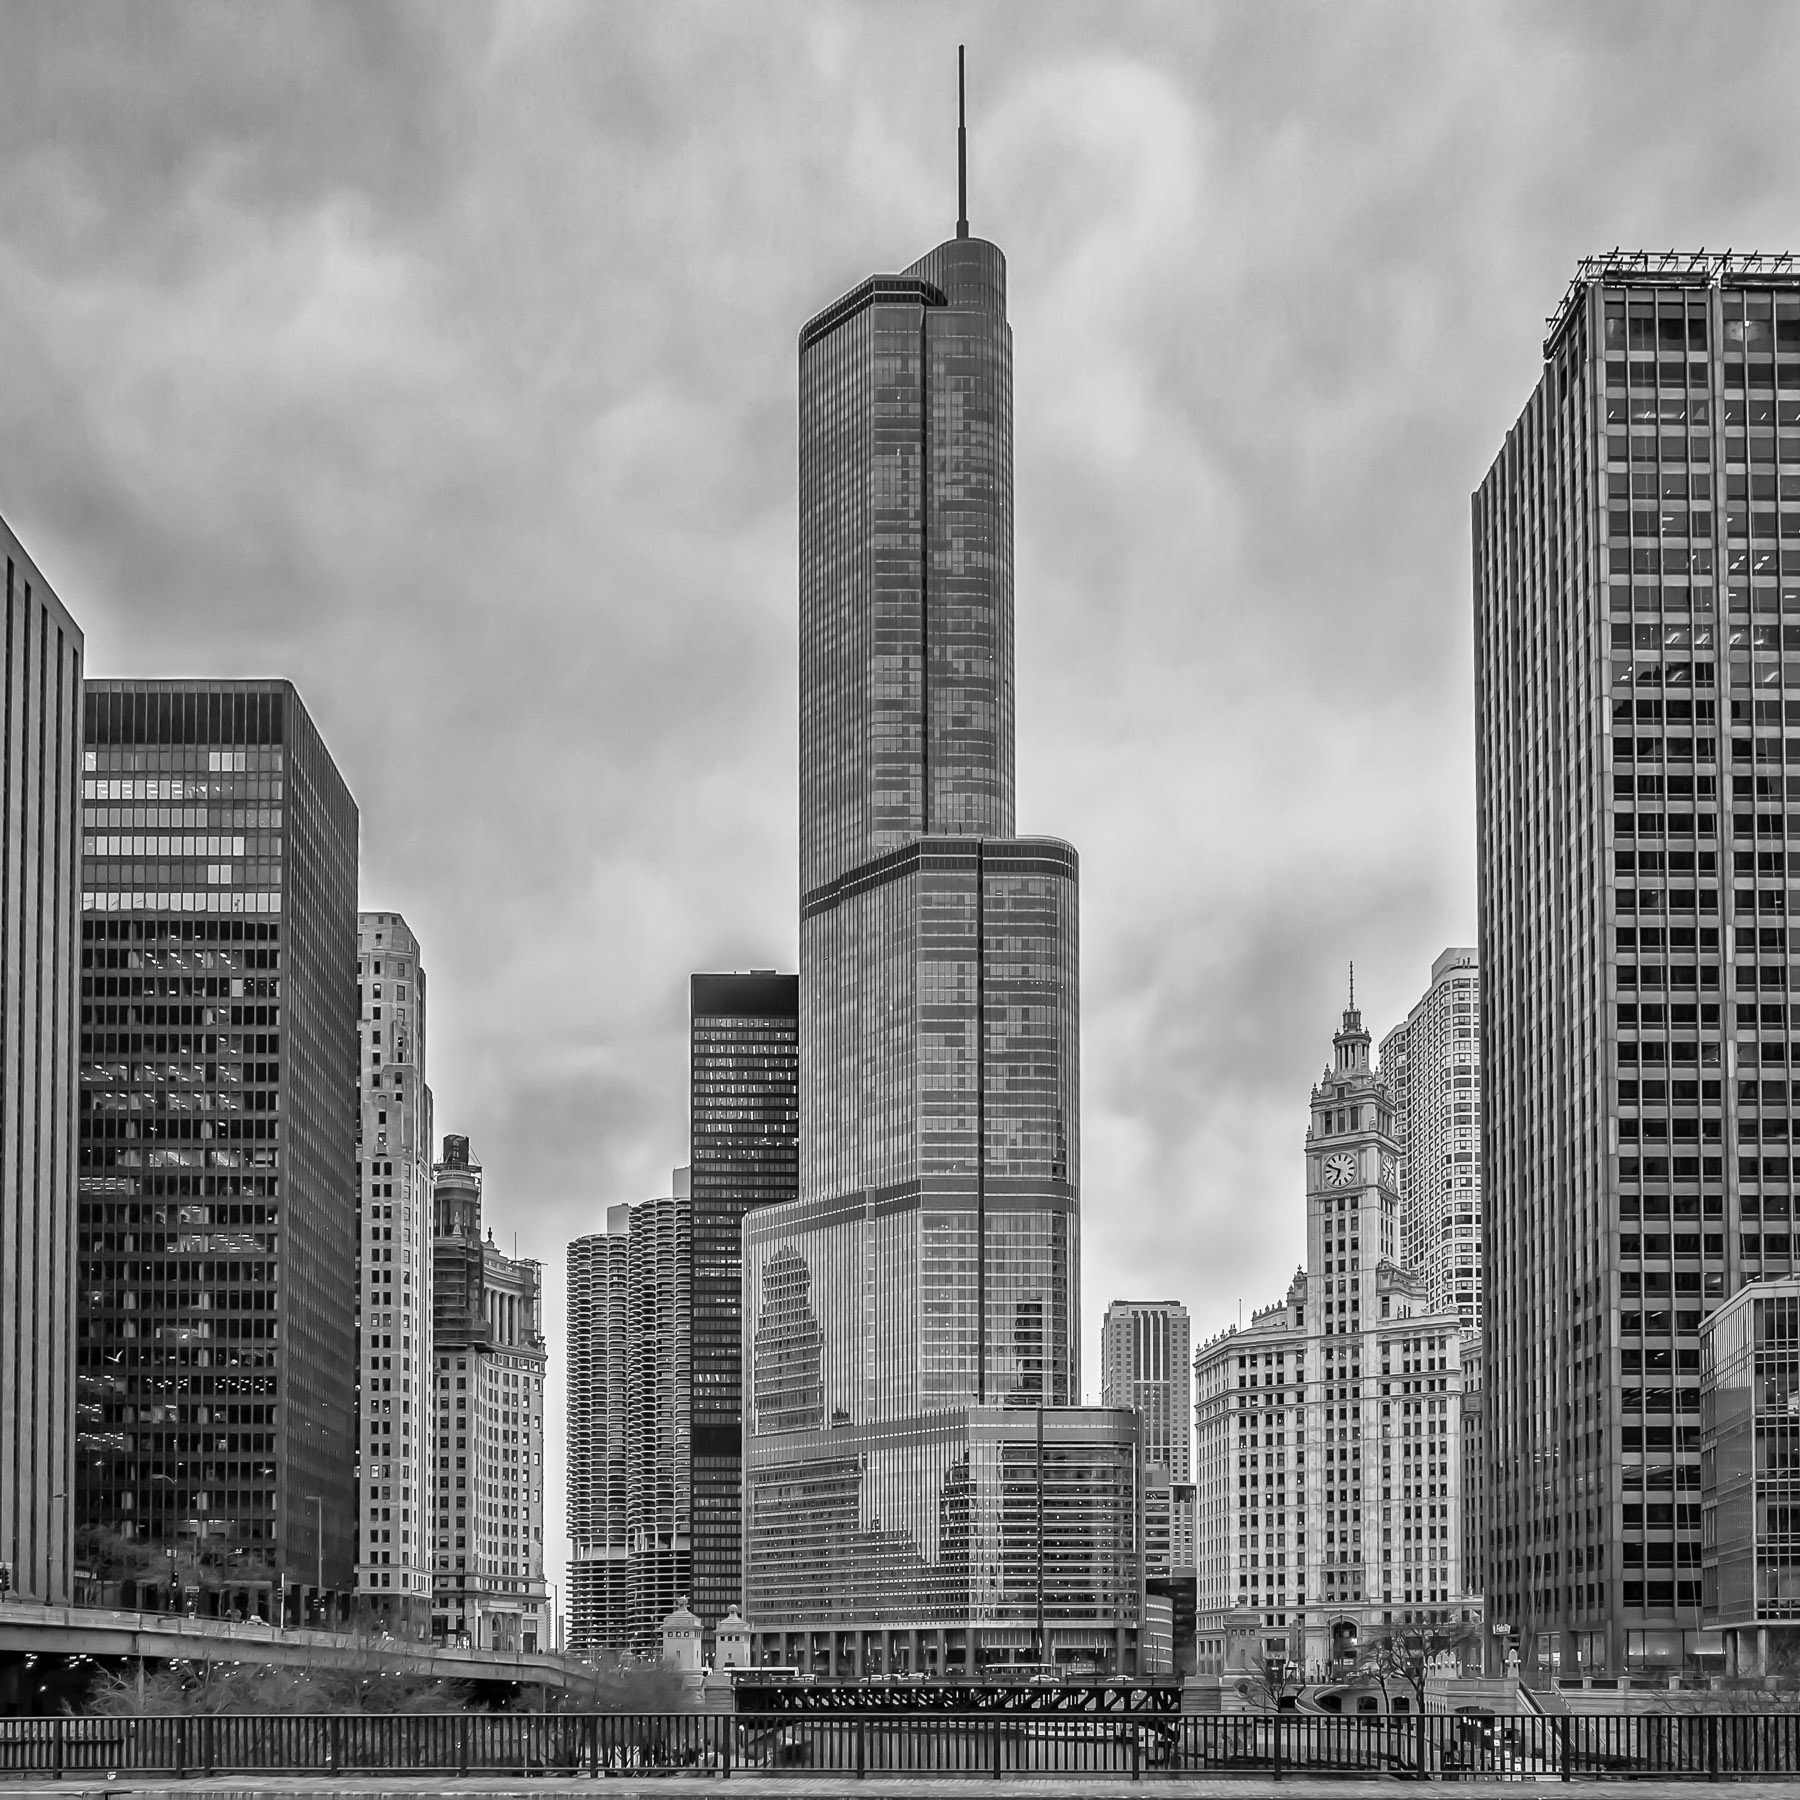 The Trump International Hotel & Tower rises into the overcast Chicago sky.